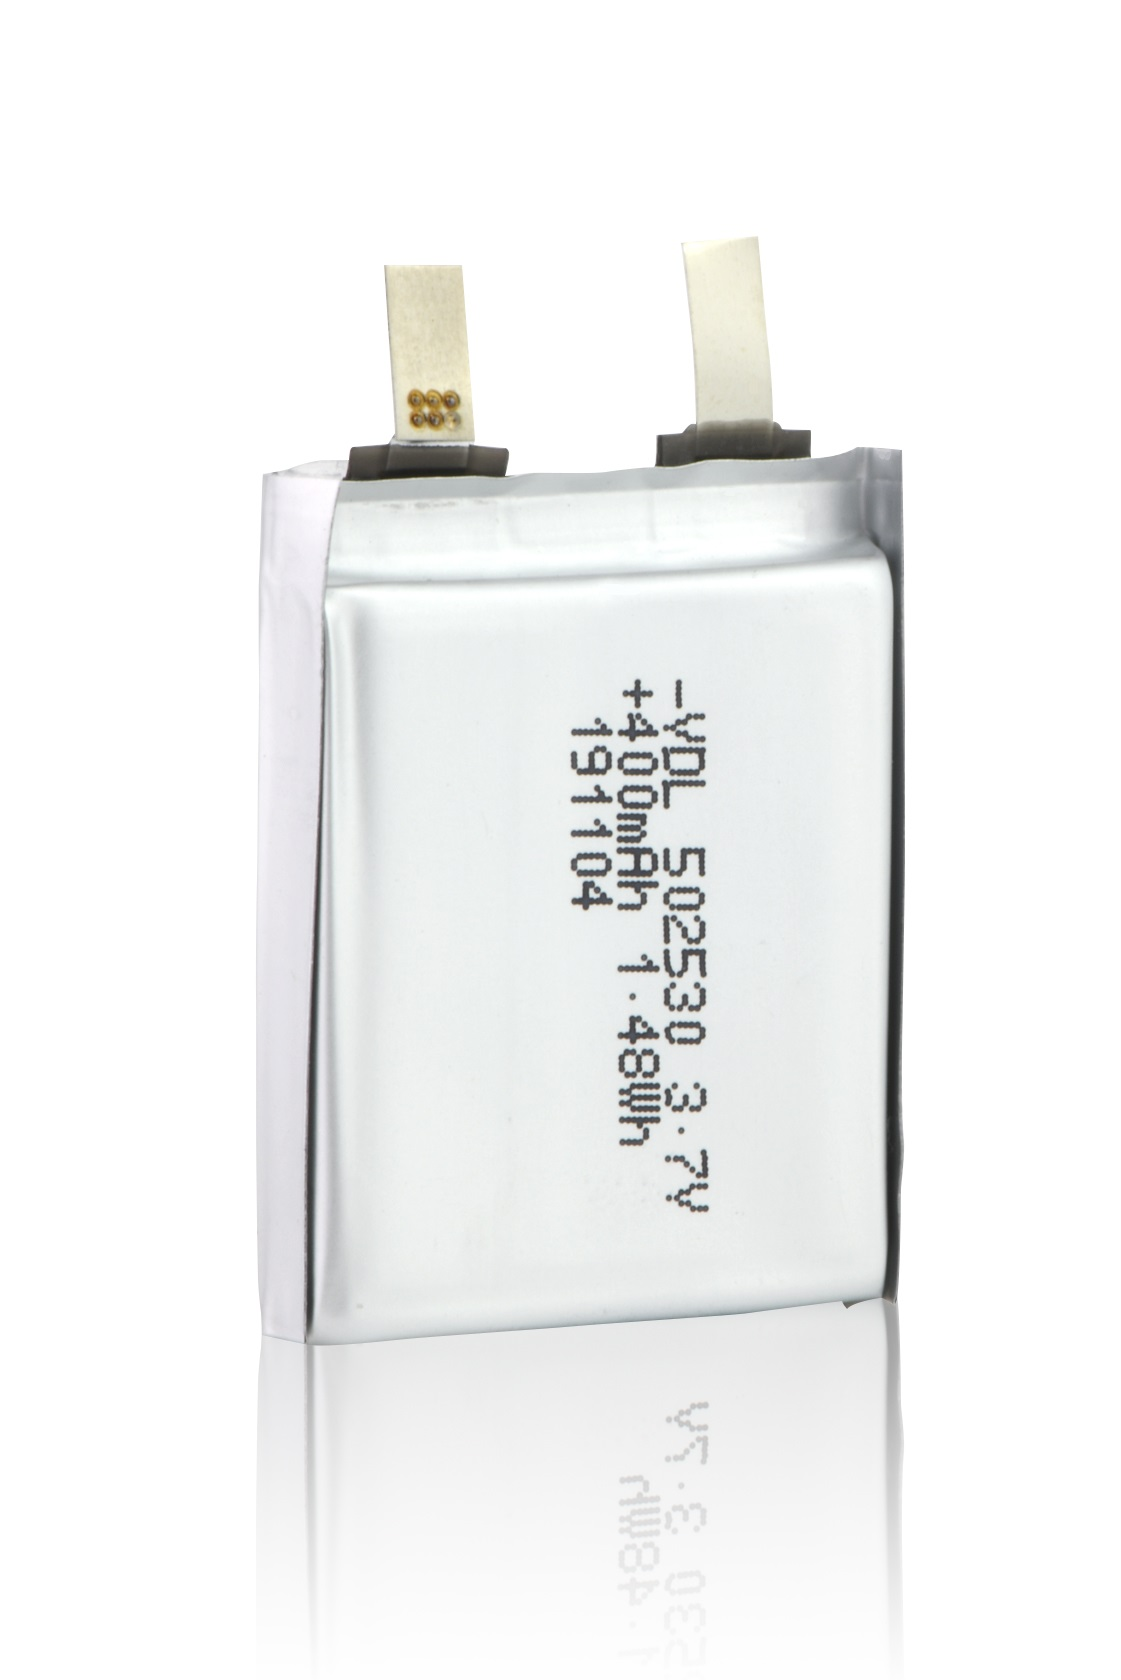 502530 3.7V,400mAh rechargeable battery